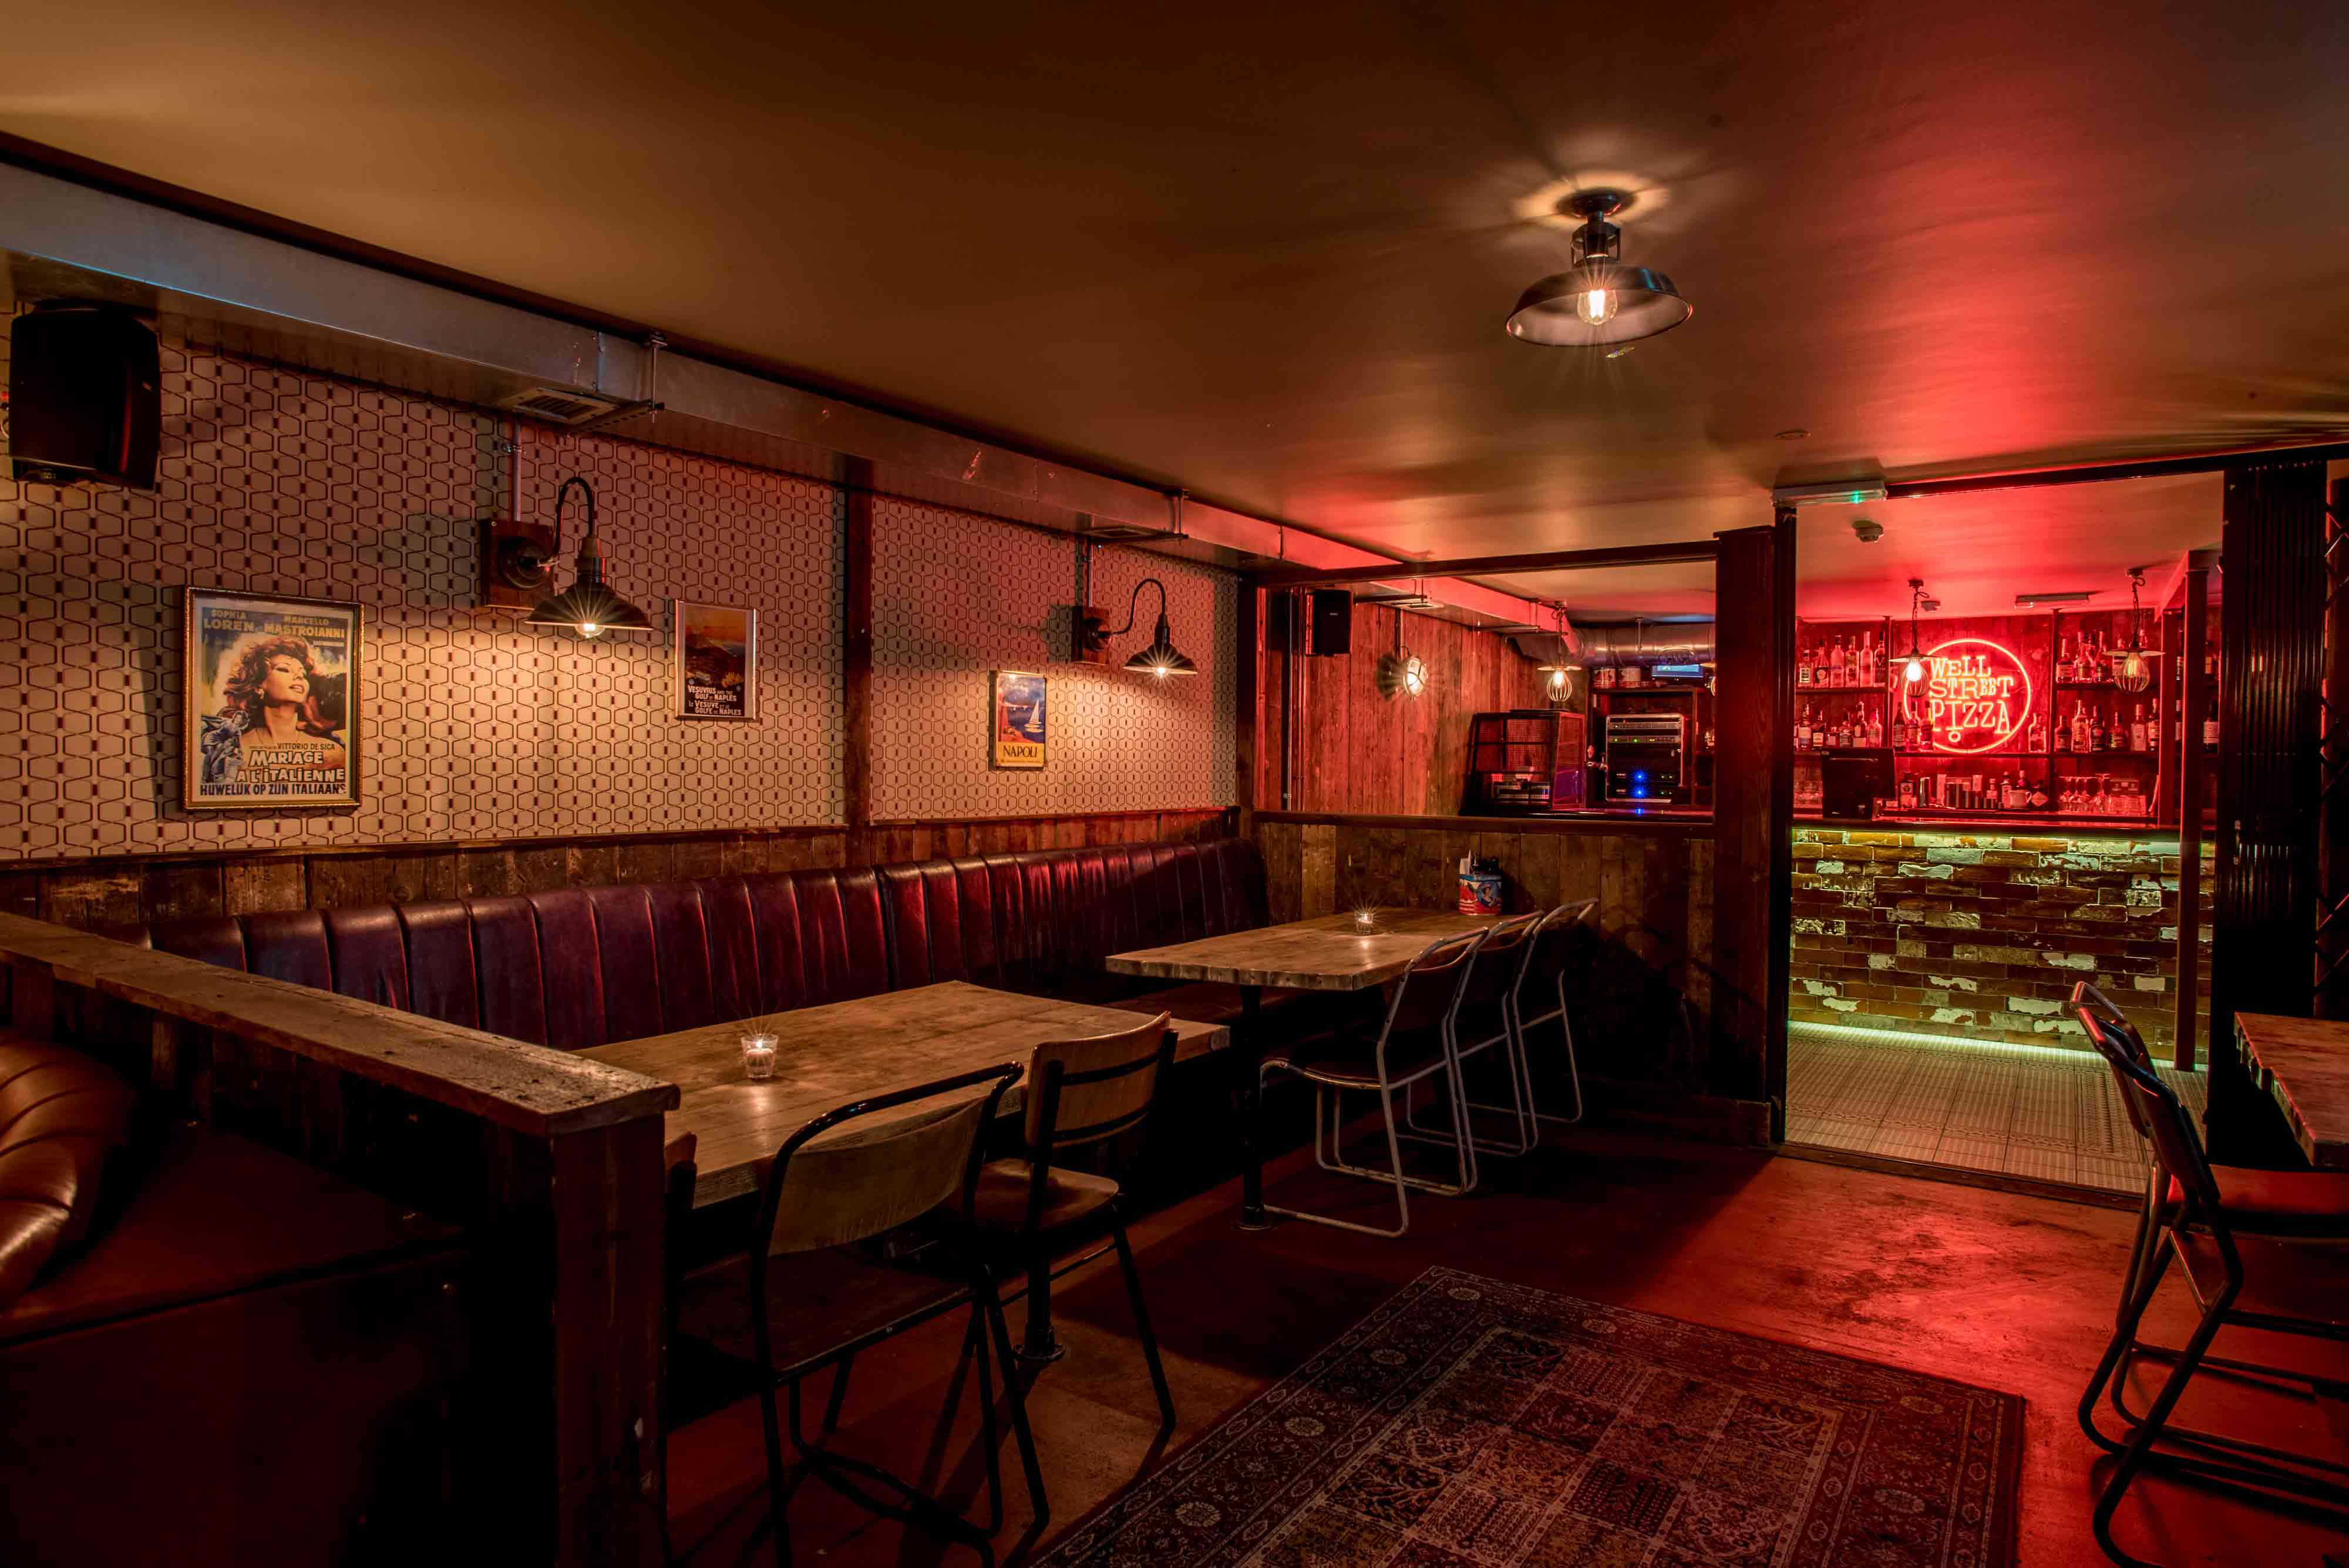 Basement bar for private hire